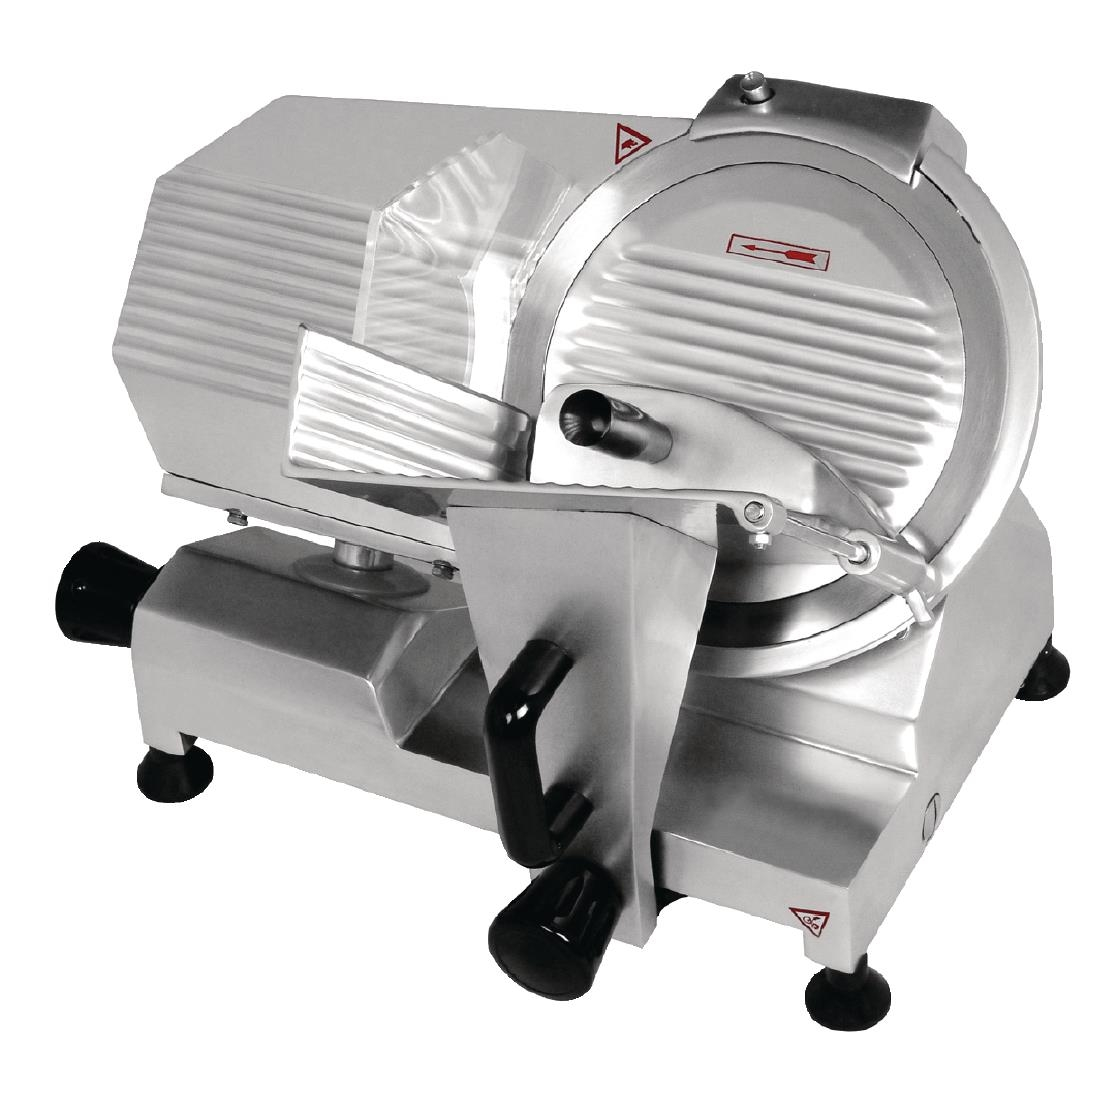 Birko Meat Slicer 300mm - DL770 - Buy Online at Nisbets